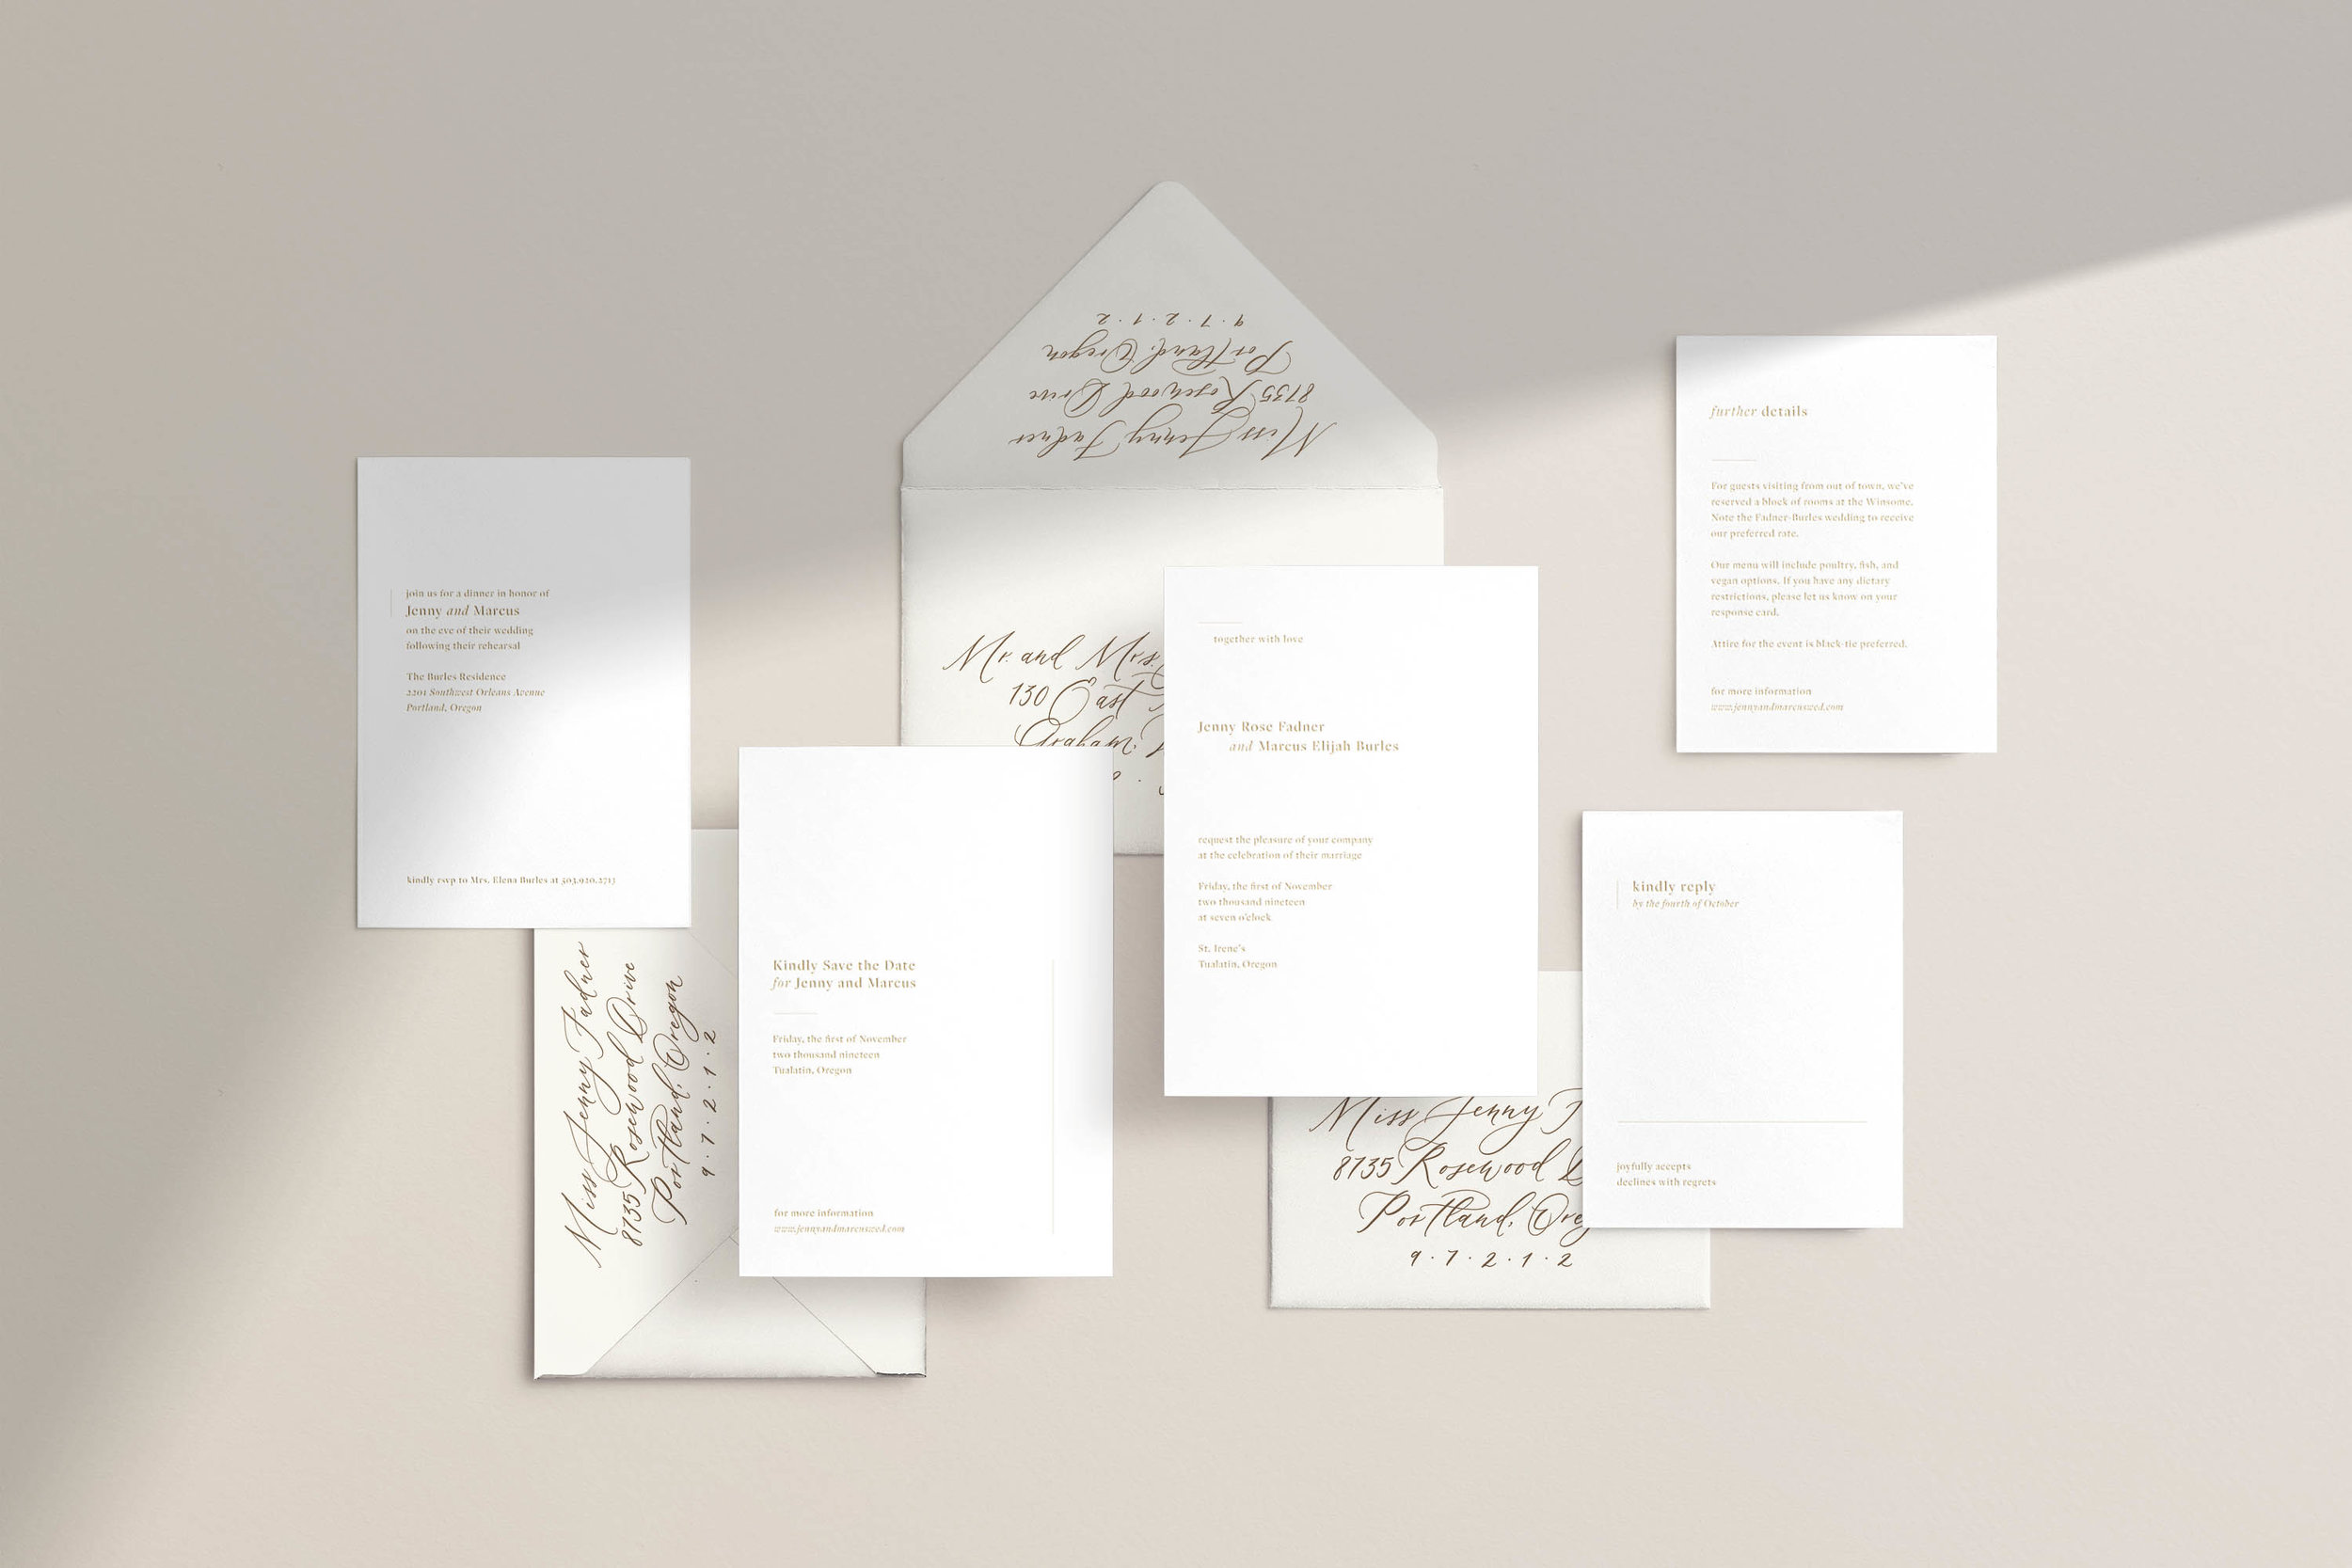 Minimalistic modern wedding invitations by Caitlin O'Bryant Design.